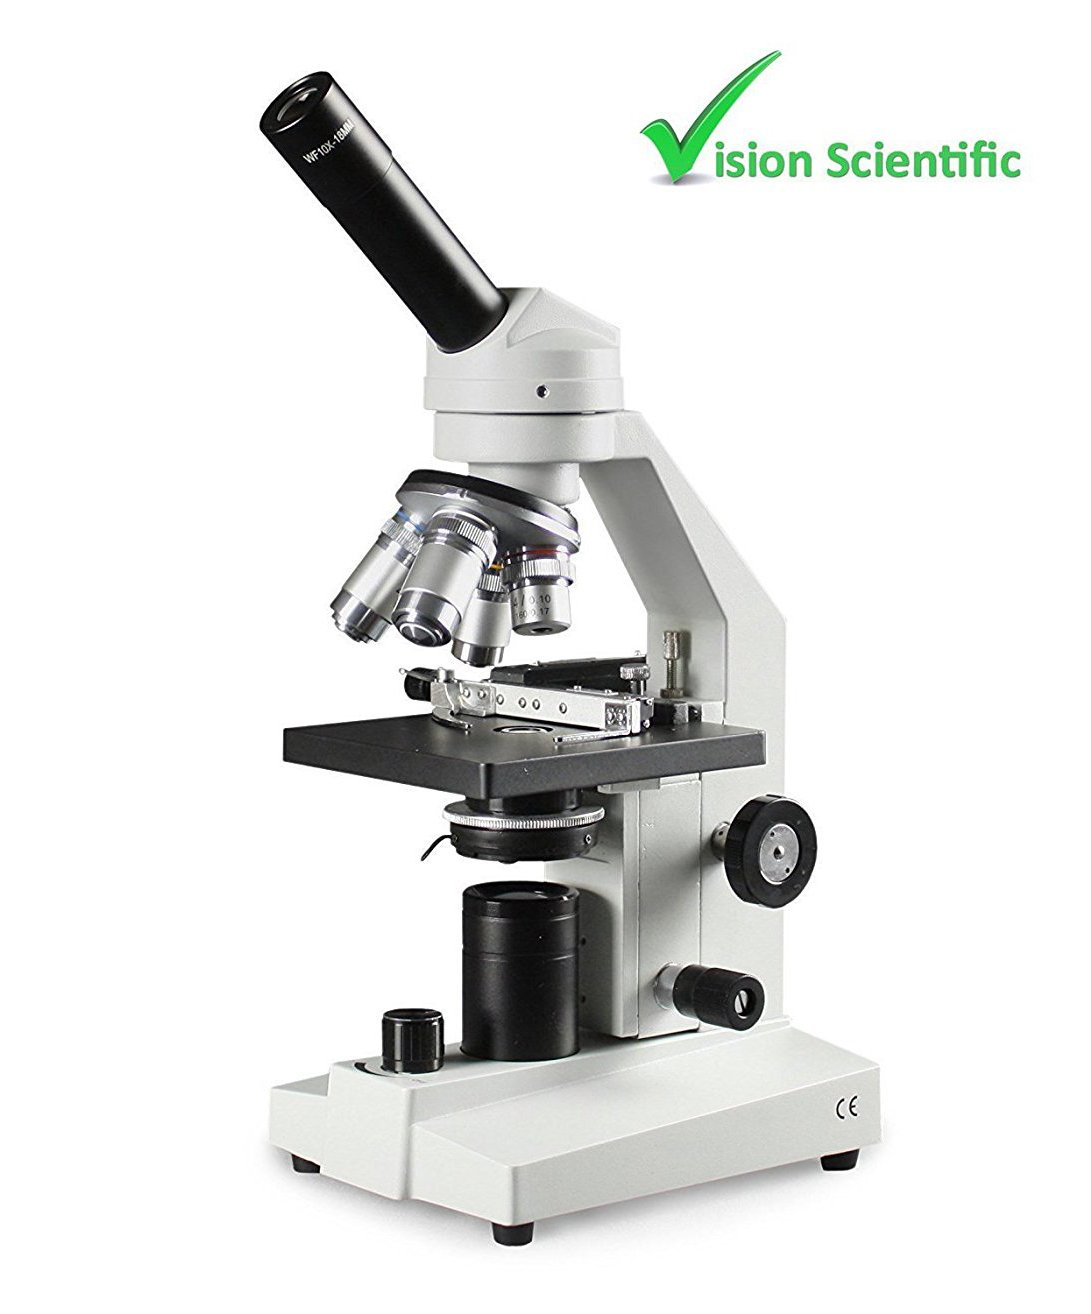 Vision Scientific VME0020X-E3-MS2 LED Microscope, 10x WF and 25x WF Eyepiece, 40x - 2500x Magnification, LED Illumination with Intensity Control, 1.25 N.A Abbe Condenser, Mechanical Stage by Vision Scientific